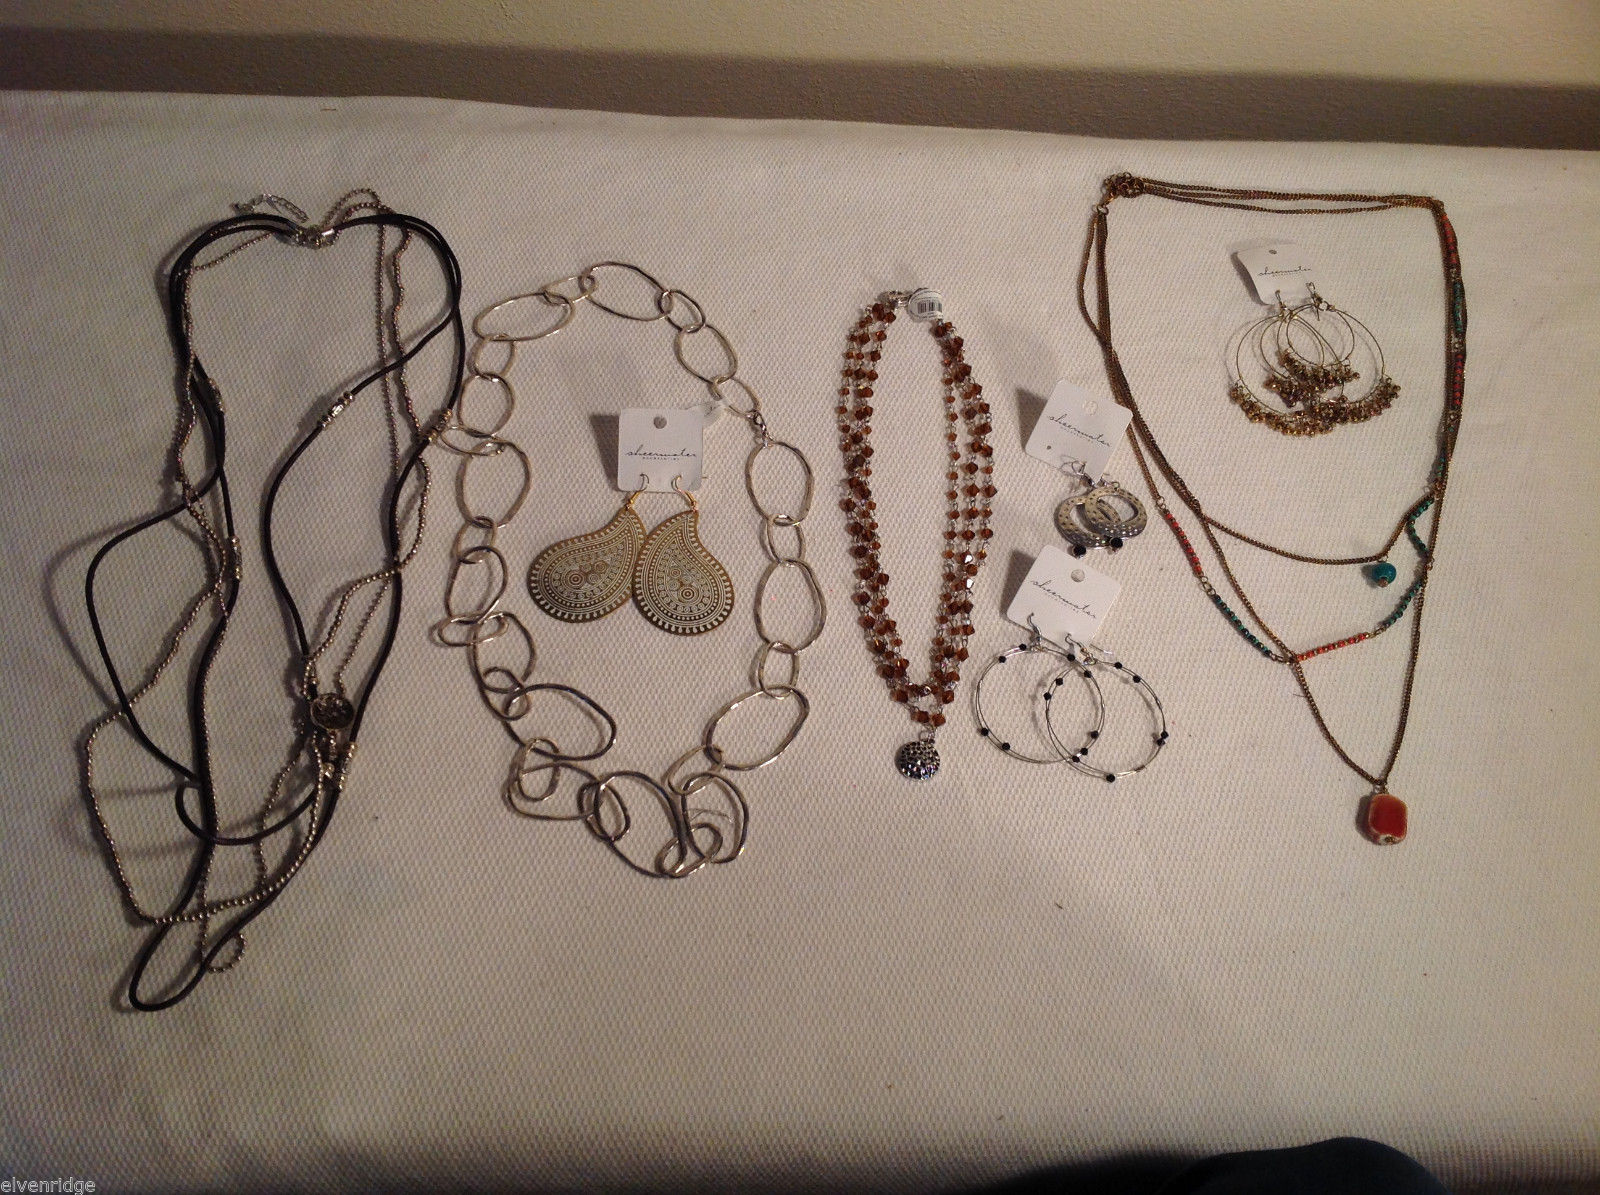 8 piece jewellery lot - 4 necklaces, 4 pairs of earrings silver tone Sheerwater